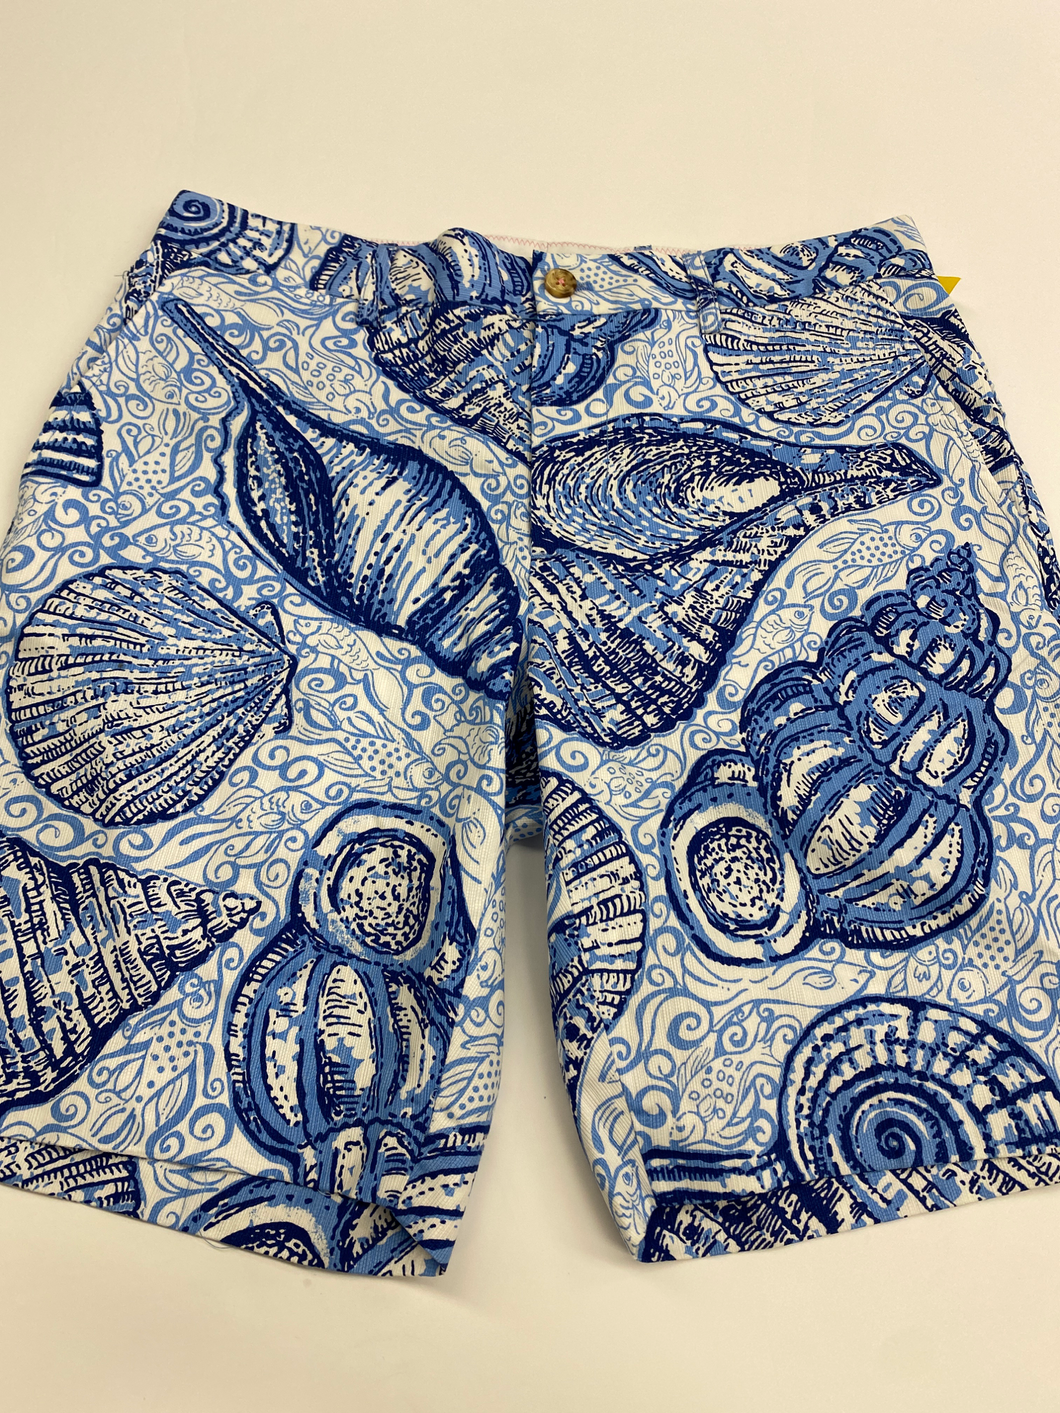 Lilly Pulitzer Shorts Size 32